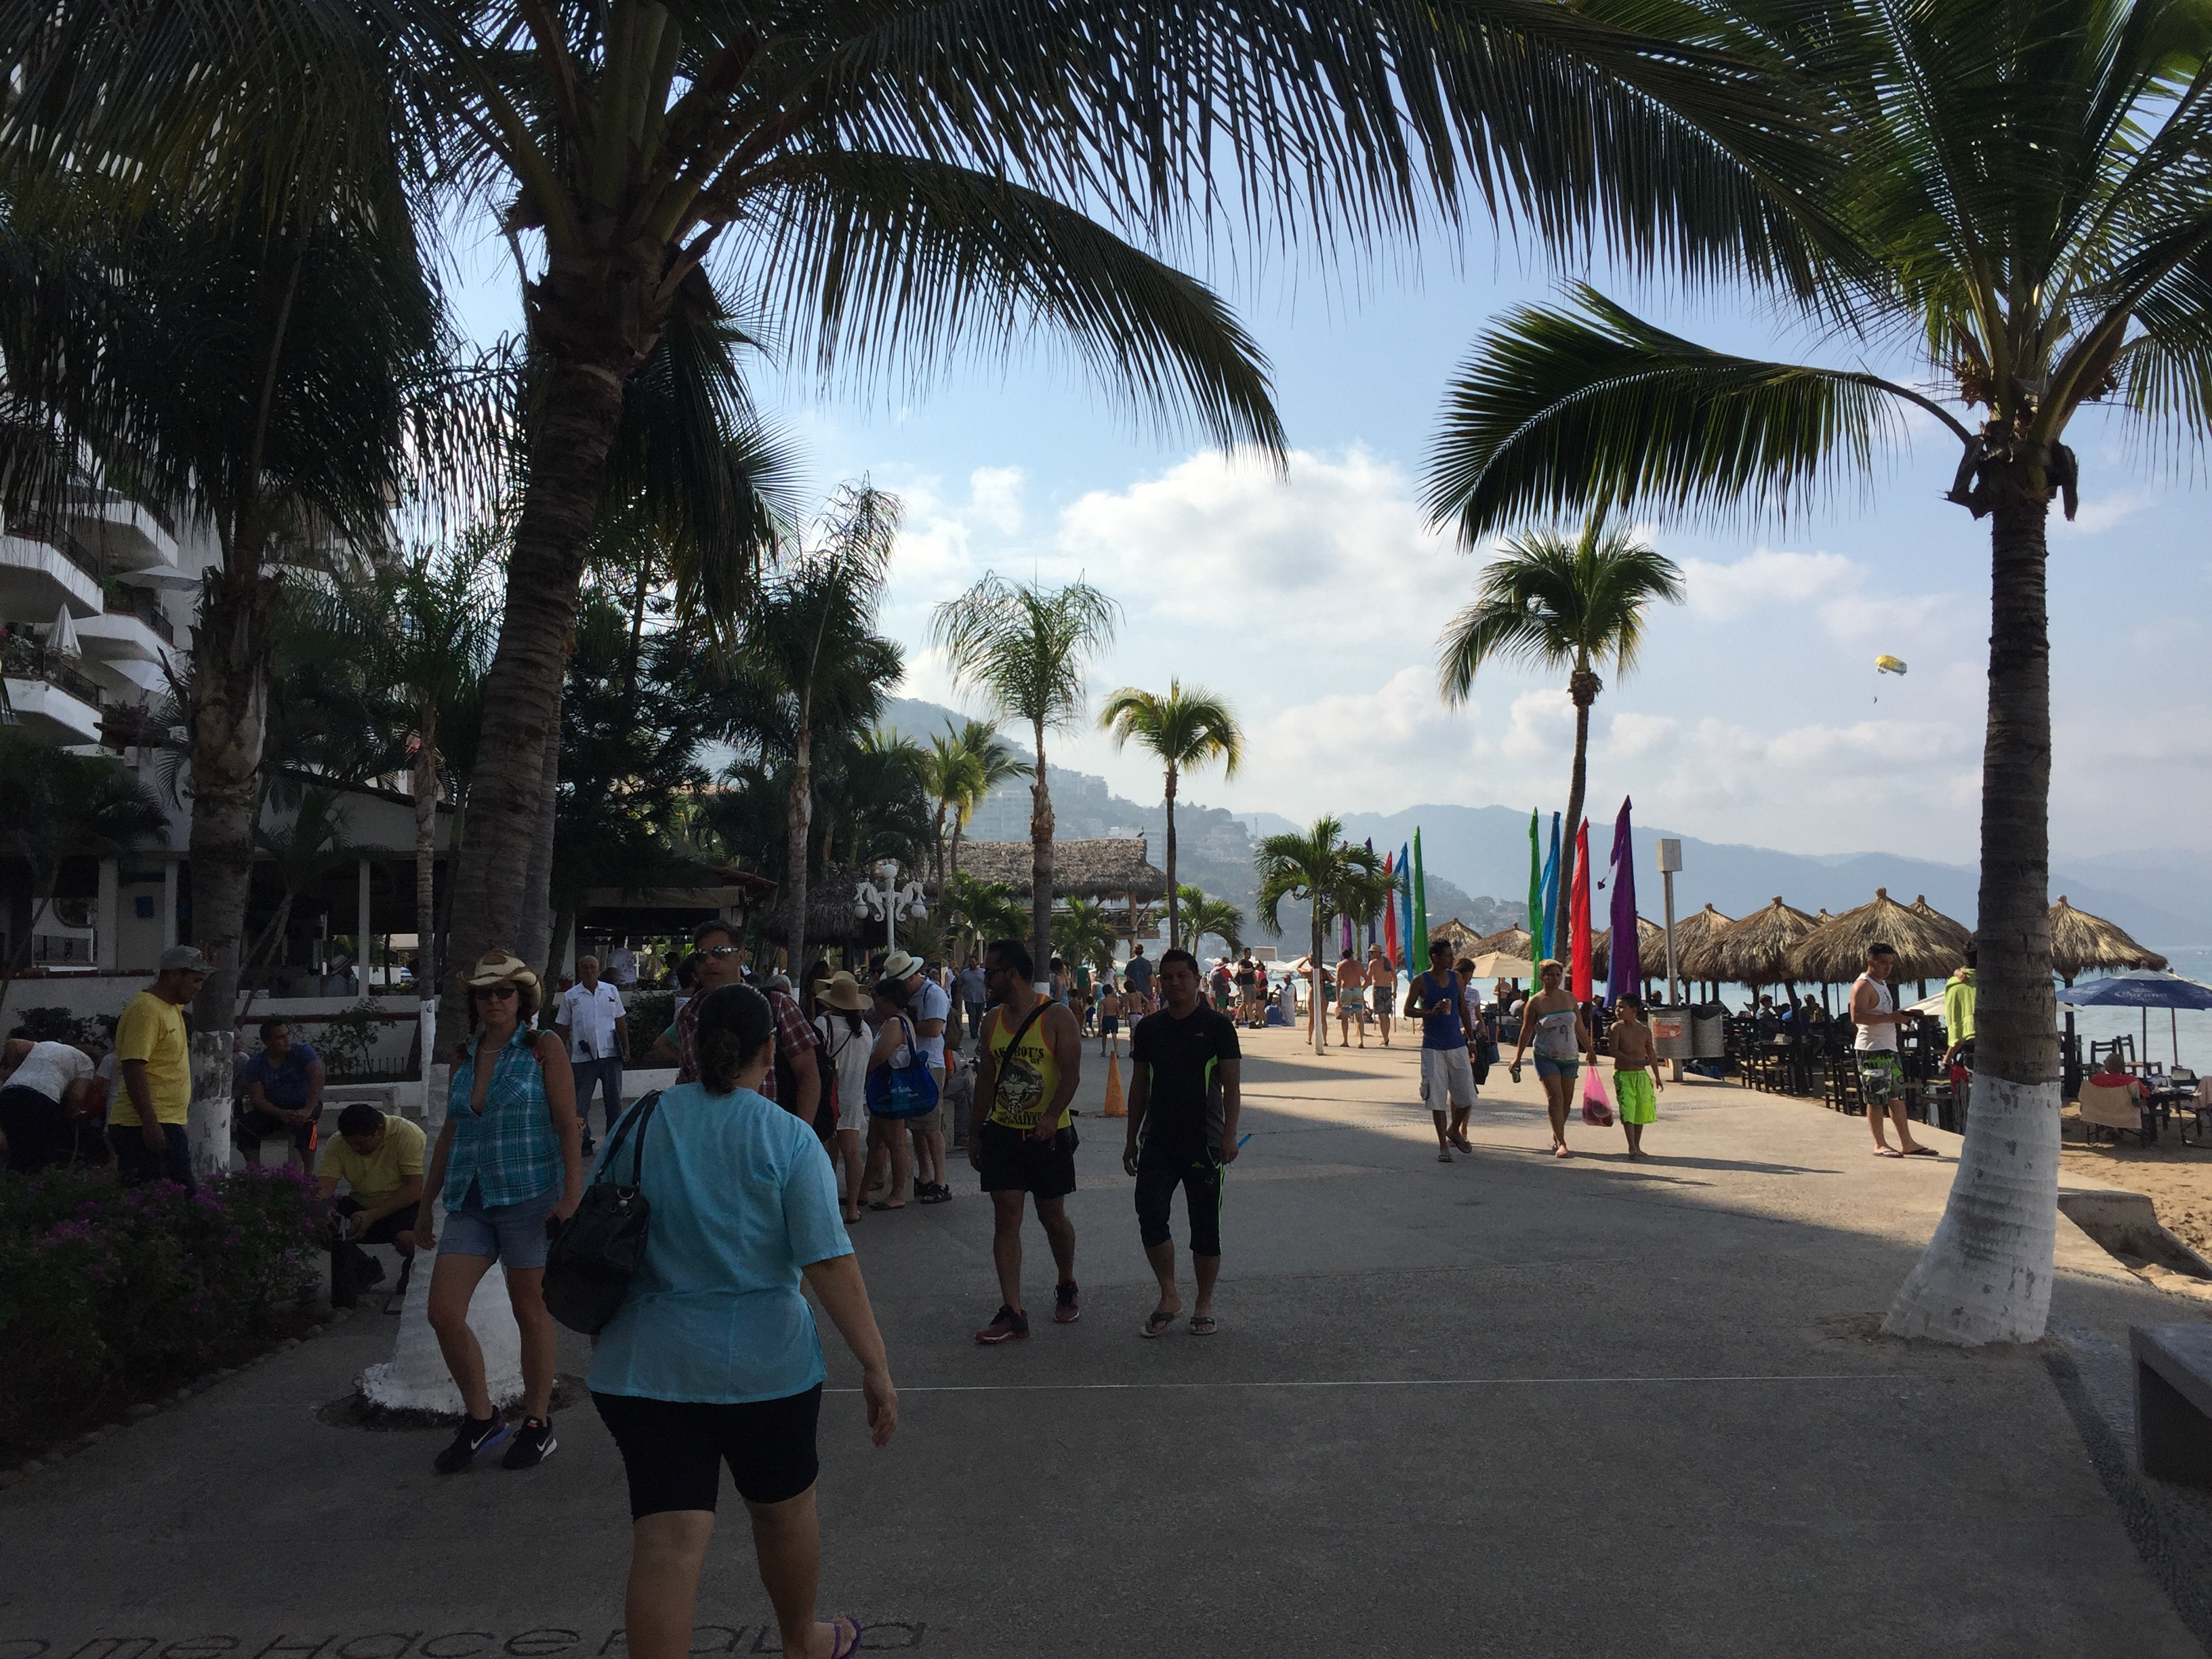 Seaside trail of old downtown area at Puerto Vallarta